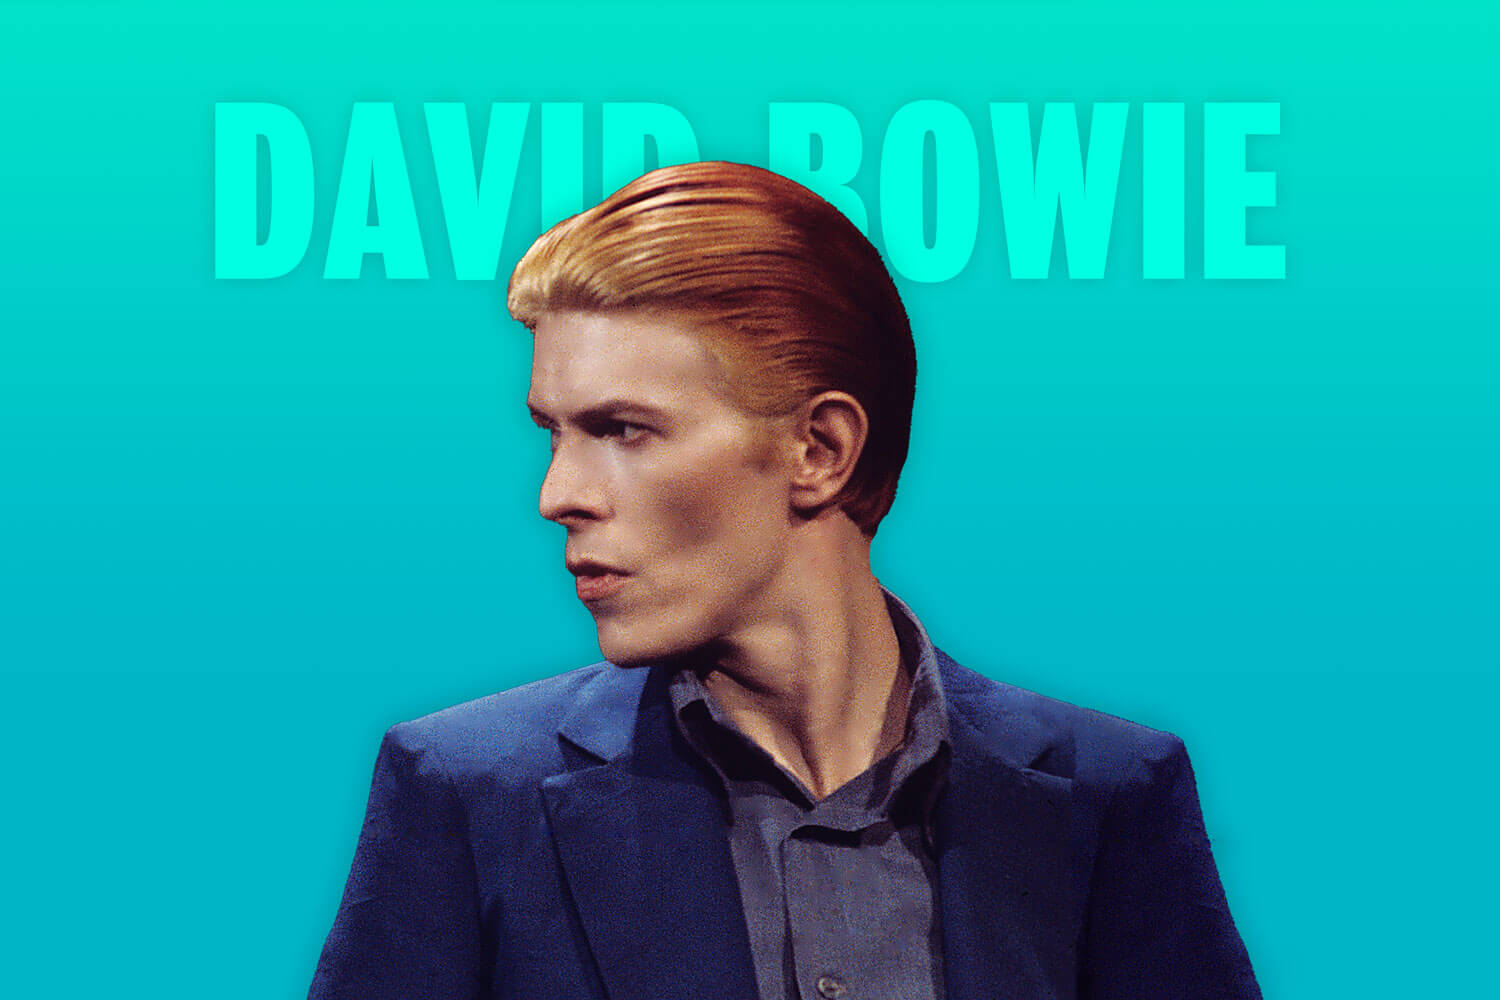 Shop David Bowie products